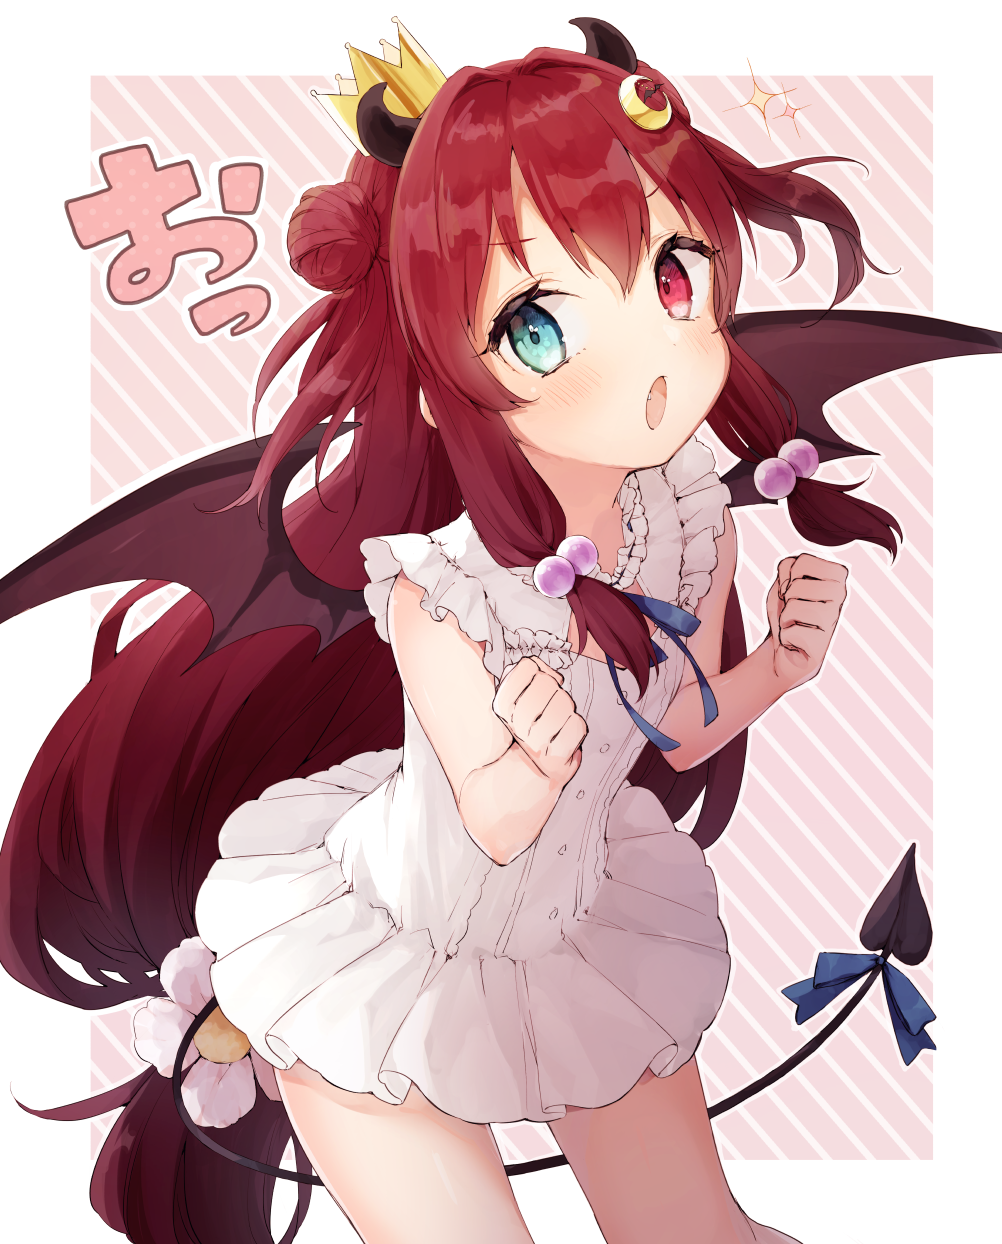 1girl blue_bow blue_ribbon blush bow brown_wings clenched_hands commentary_request crescent crescent_hair_ornament demon_girl demon_horns demon_tail demon_wings diagonal_stripes double_bun dress fang flower frilled_dress frills hair_bobbles hair_flower hair_ornament hands_up highres honotai horns long_hair nijisanji open_mouth pink_background red_eyes redhead ribbon sidelocks sleeveless sleeveless_dress solo striped striped_background tail tail_bow two-tone_background two_side_up very_long_hair virtual_youtuber white_background white_dress white_flower wings yuzuki_roa